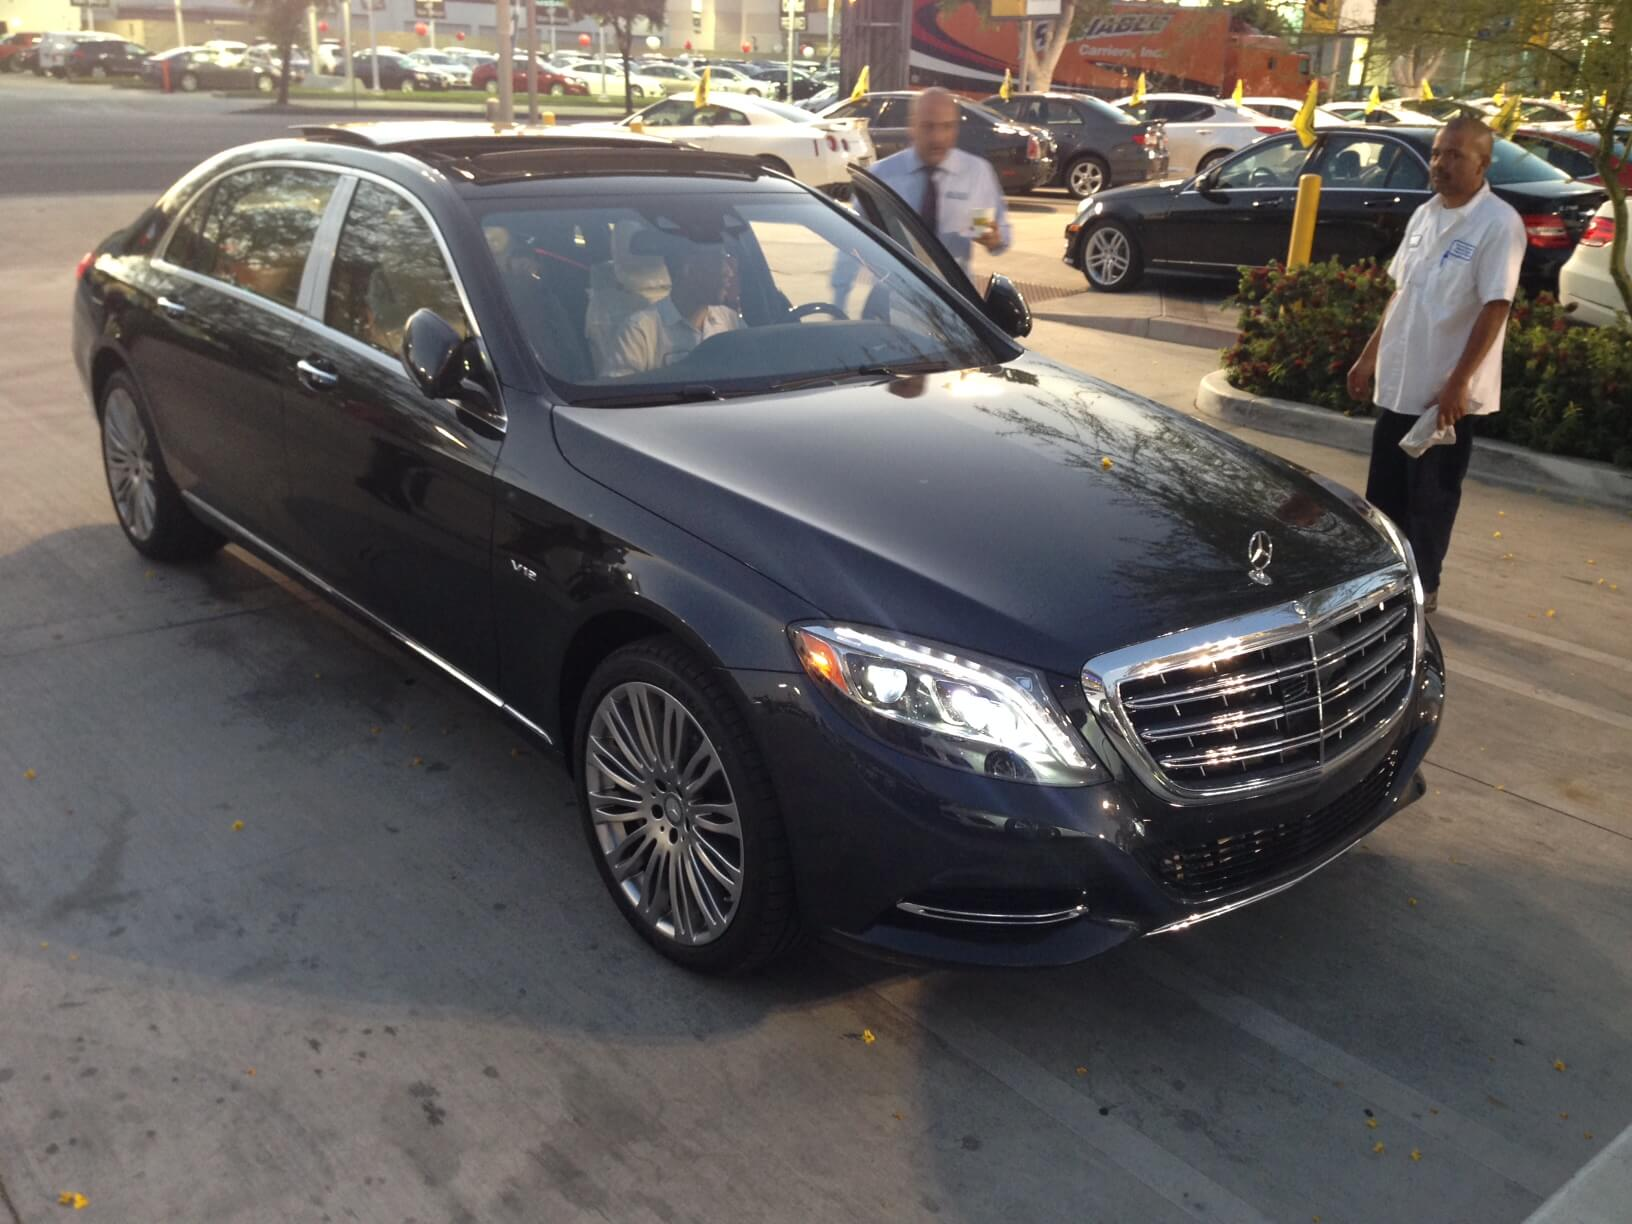 armored 2016 mercedes maybach now available - armormax